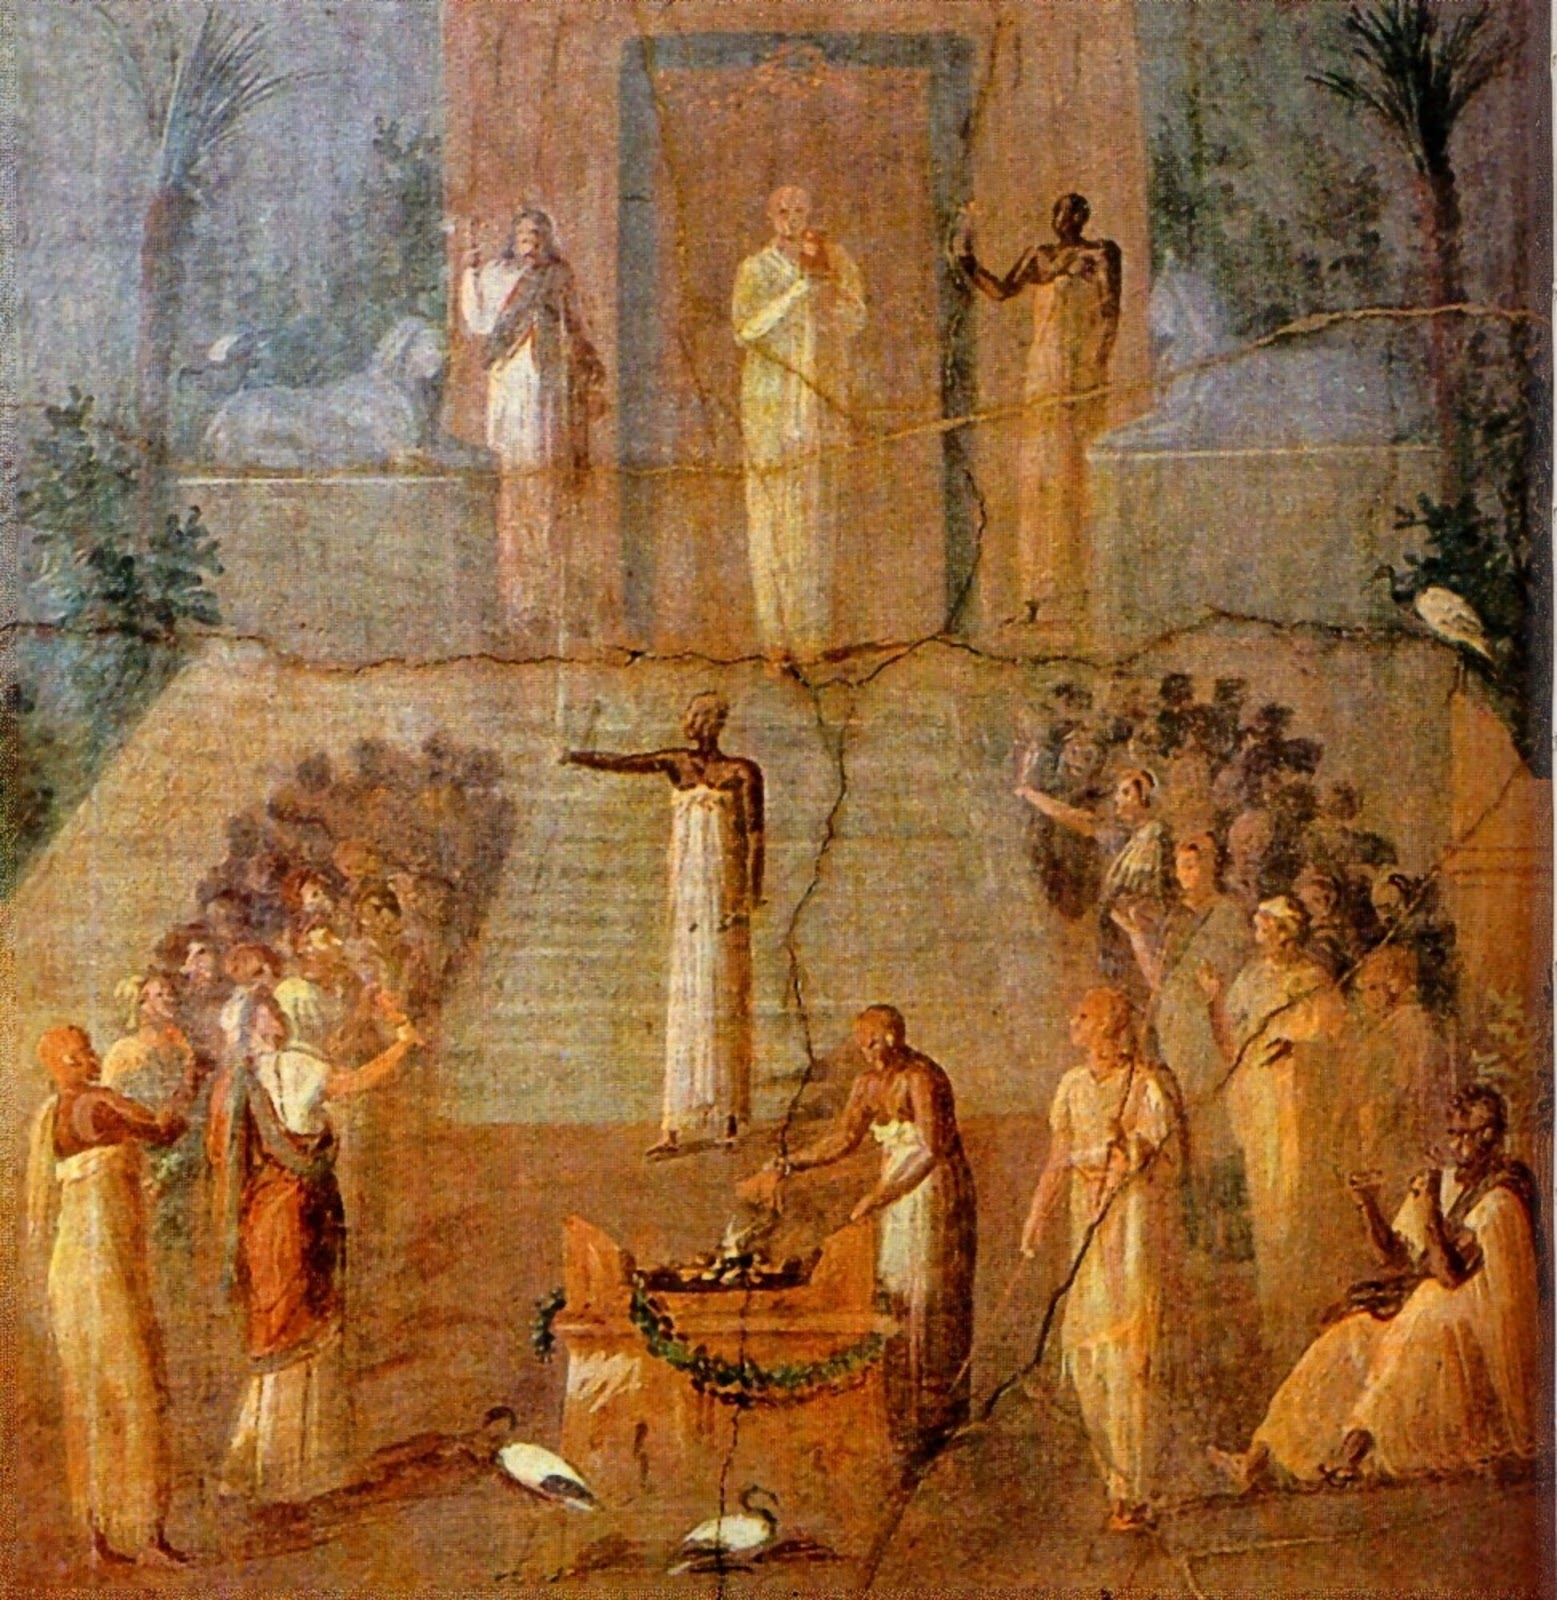 Initiation Rites Of The Cult Of Bacchus